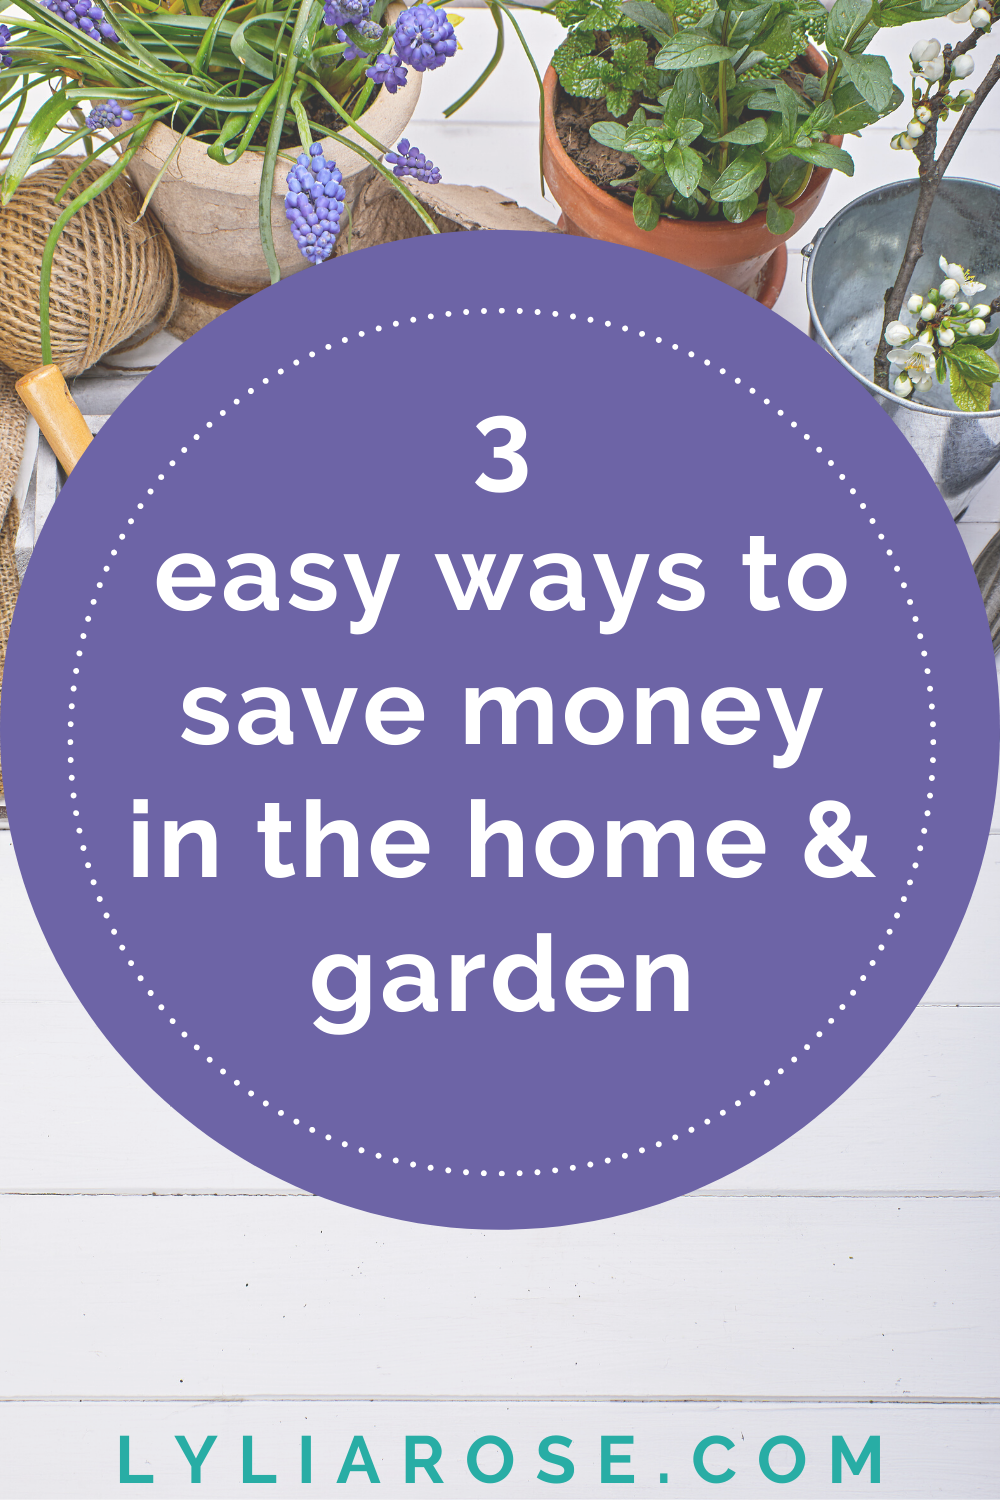 3 easy ways to save money in the home & garden